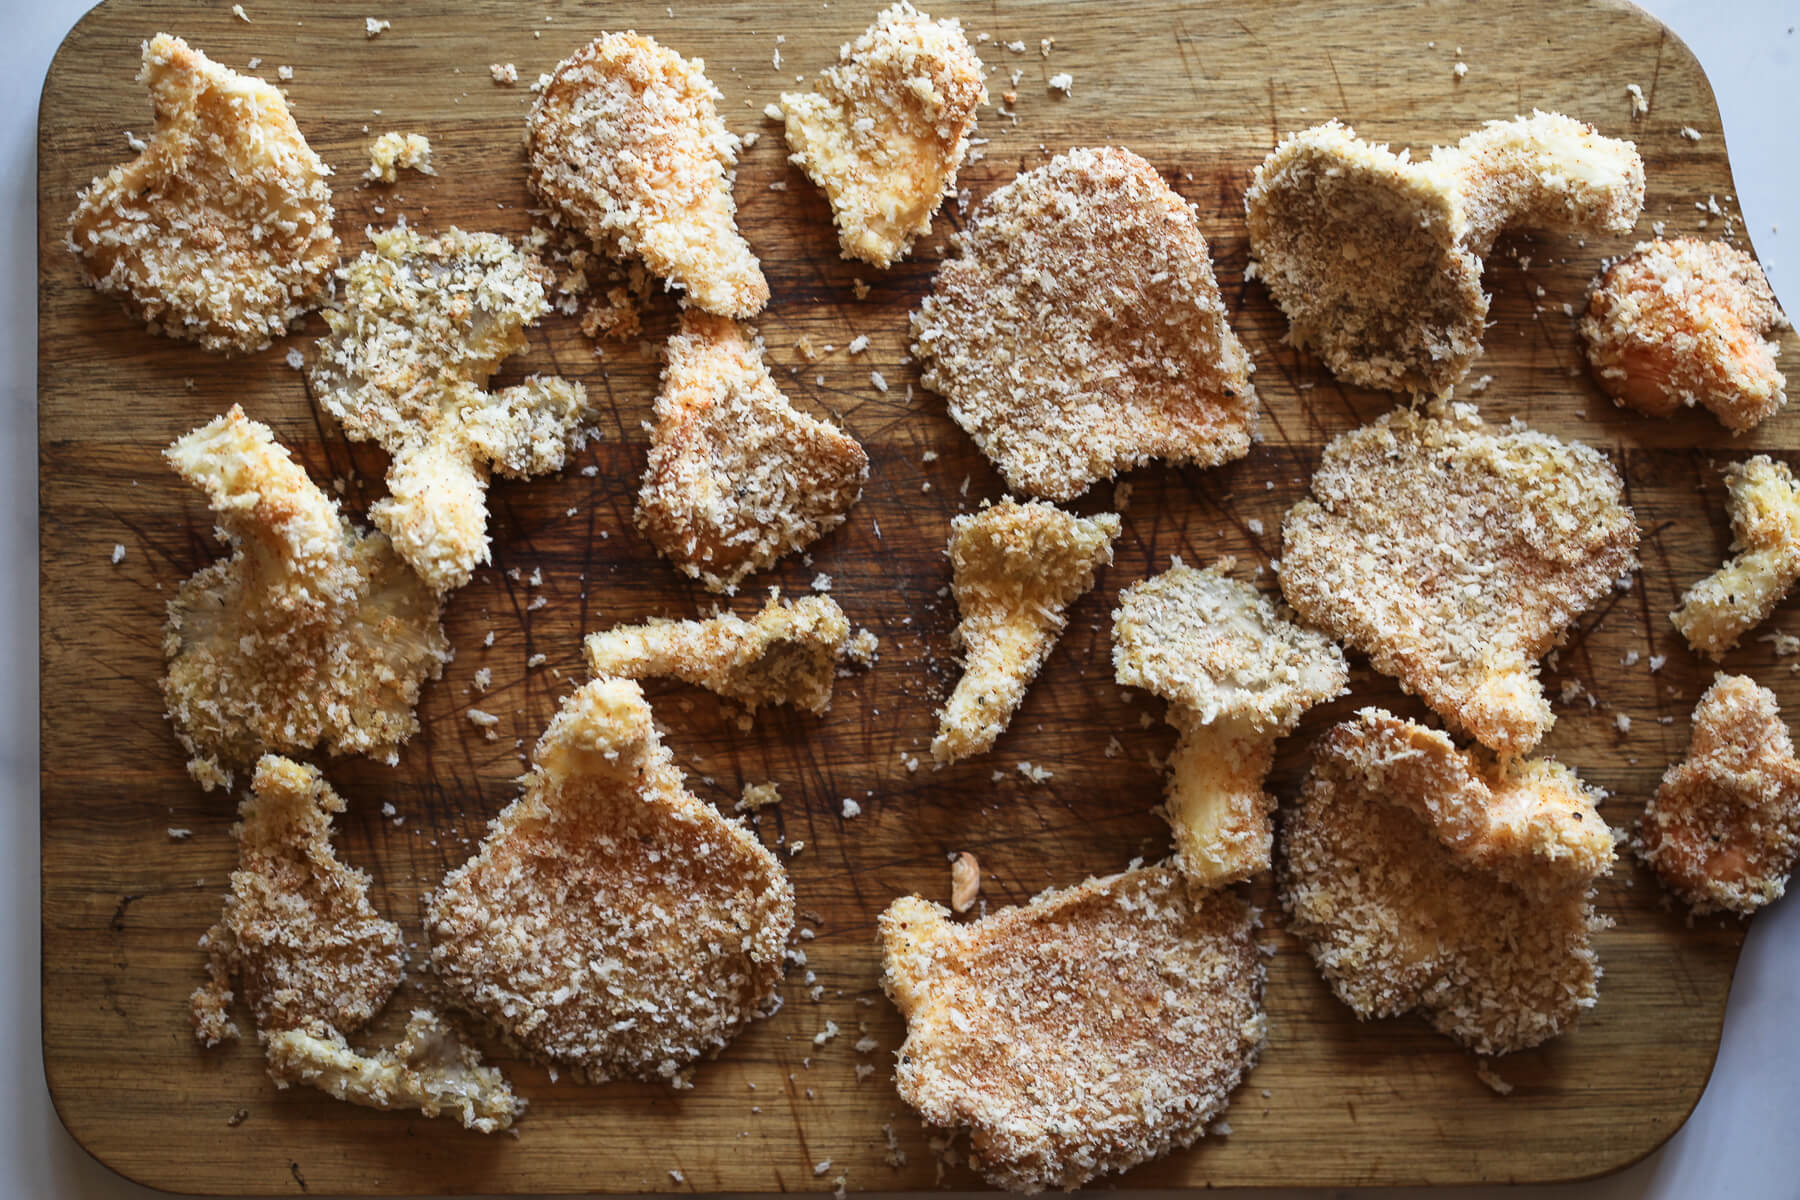 Breaded oyster mushrooms ready to be fried.